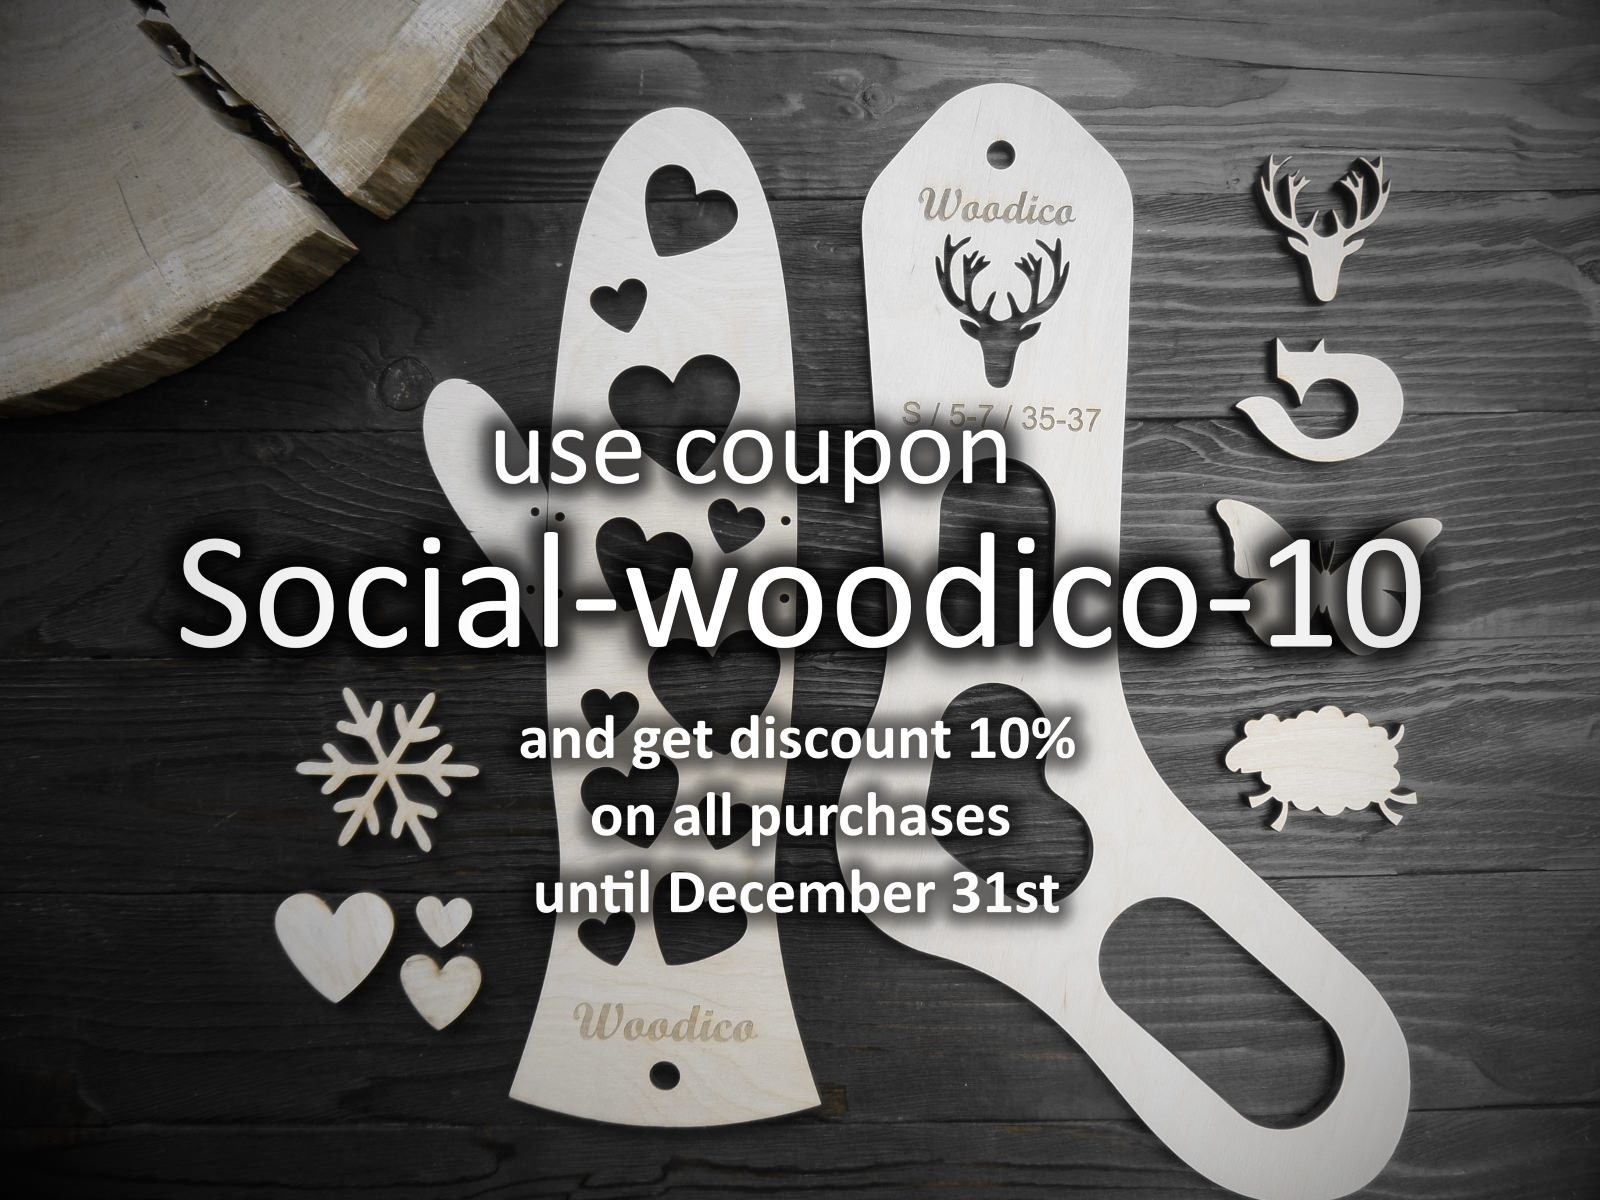 woodico.pro - Discount for readers, subscribers and friends from social networks